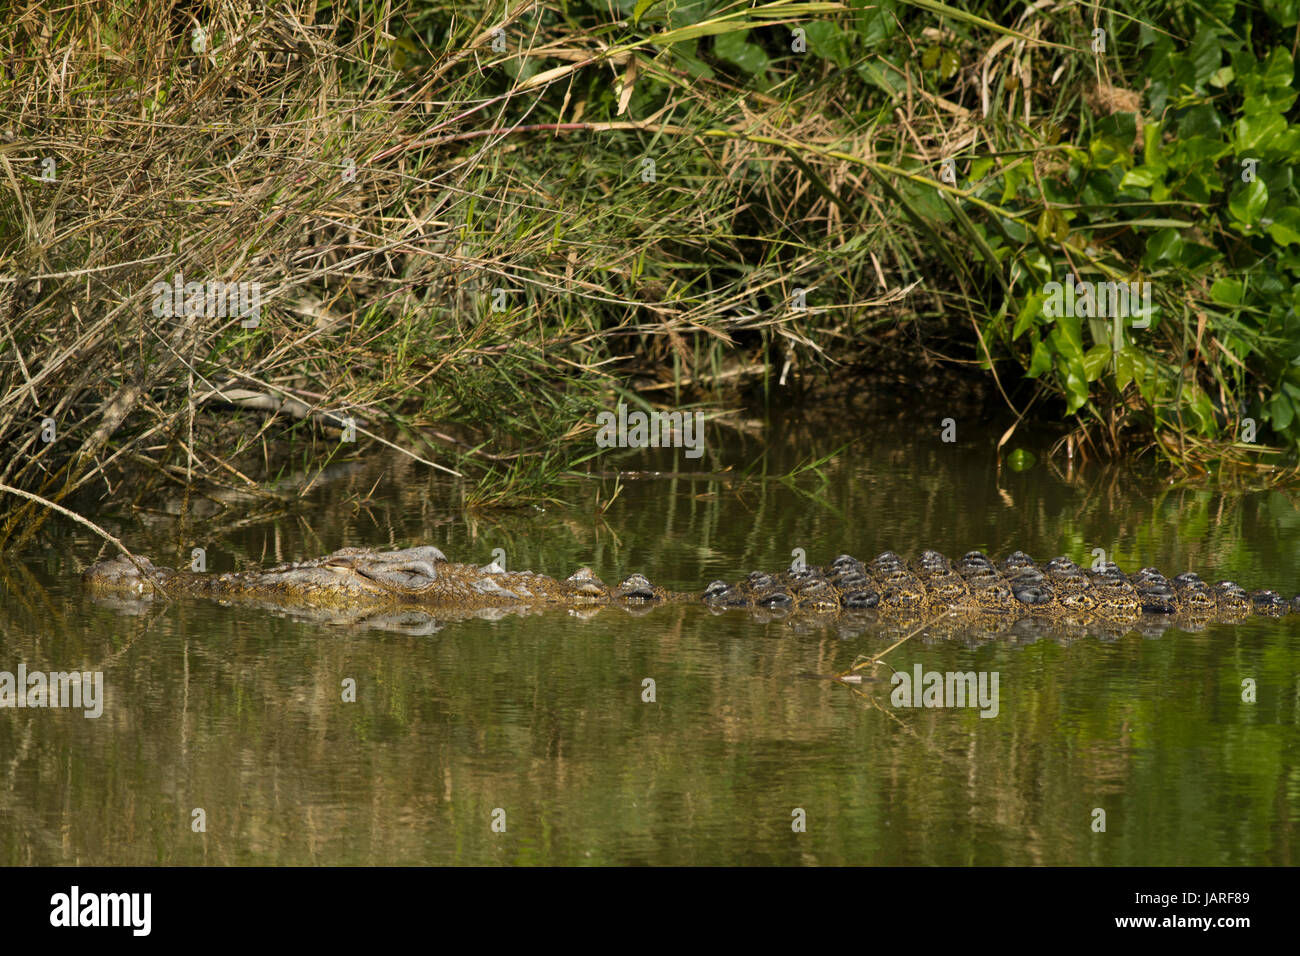 A Salt-water crocodile at crocodile breeding centre in the Sunderbans. It was established in Koromjol area of Mongla - Stock Image